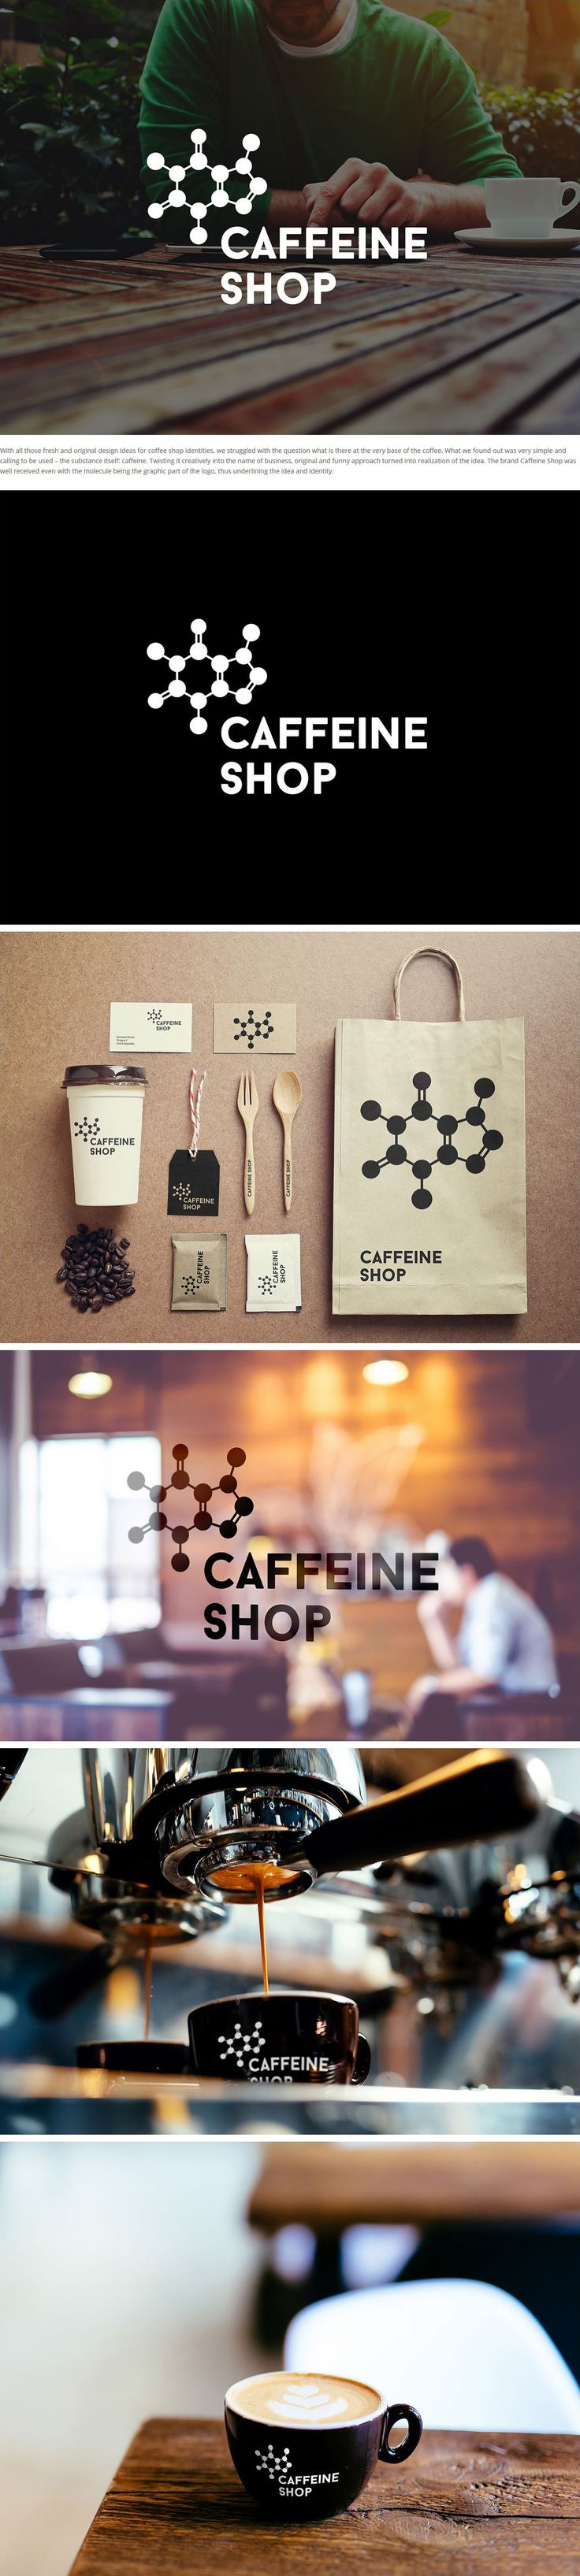 Coffee shop branding uses caffeine molecule as logo